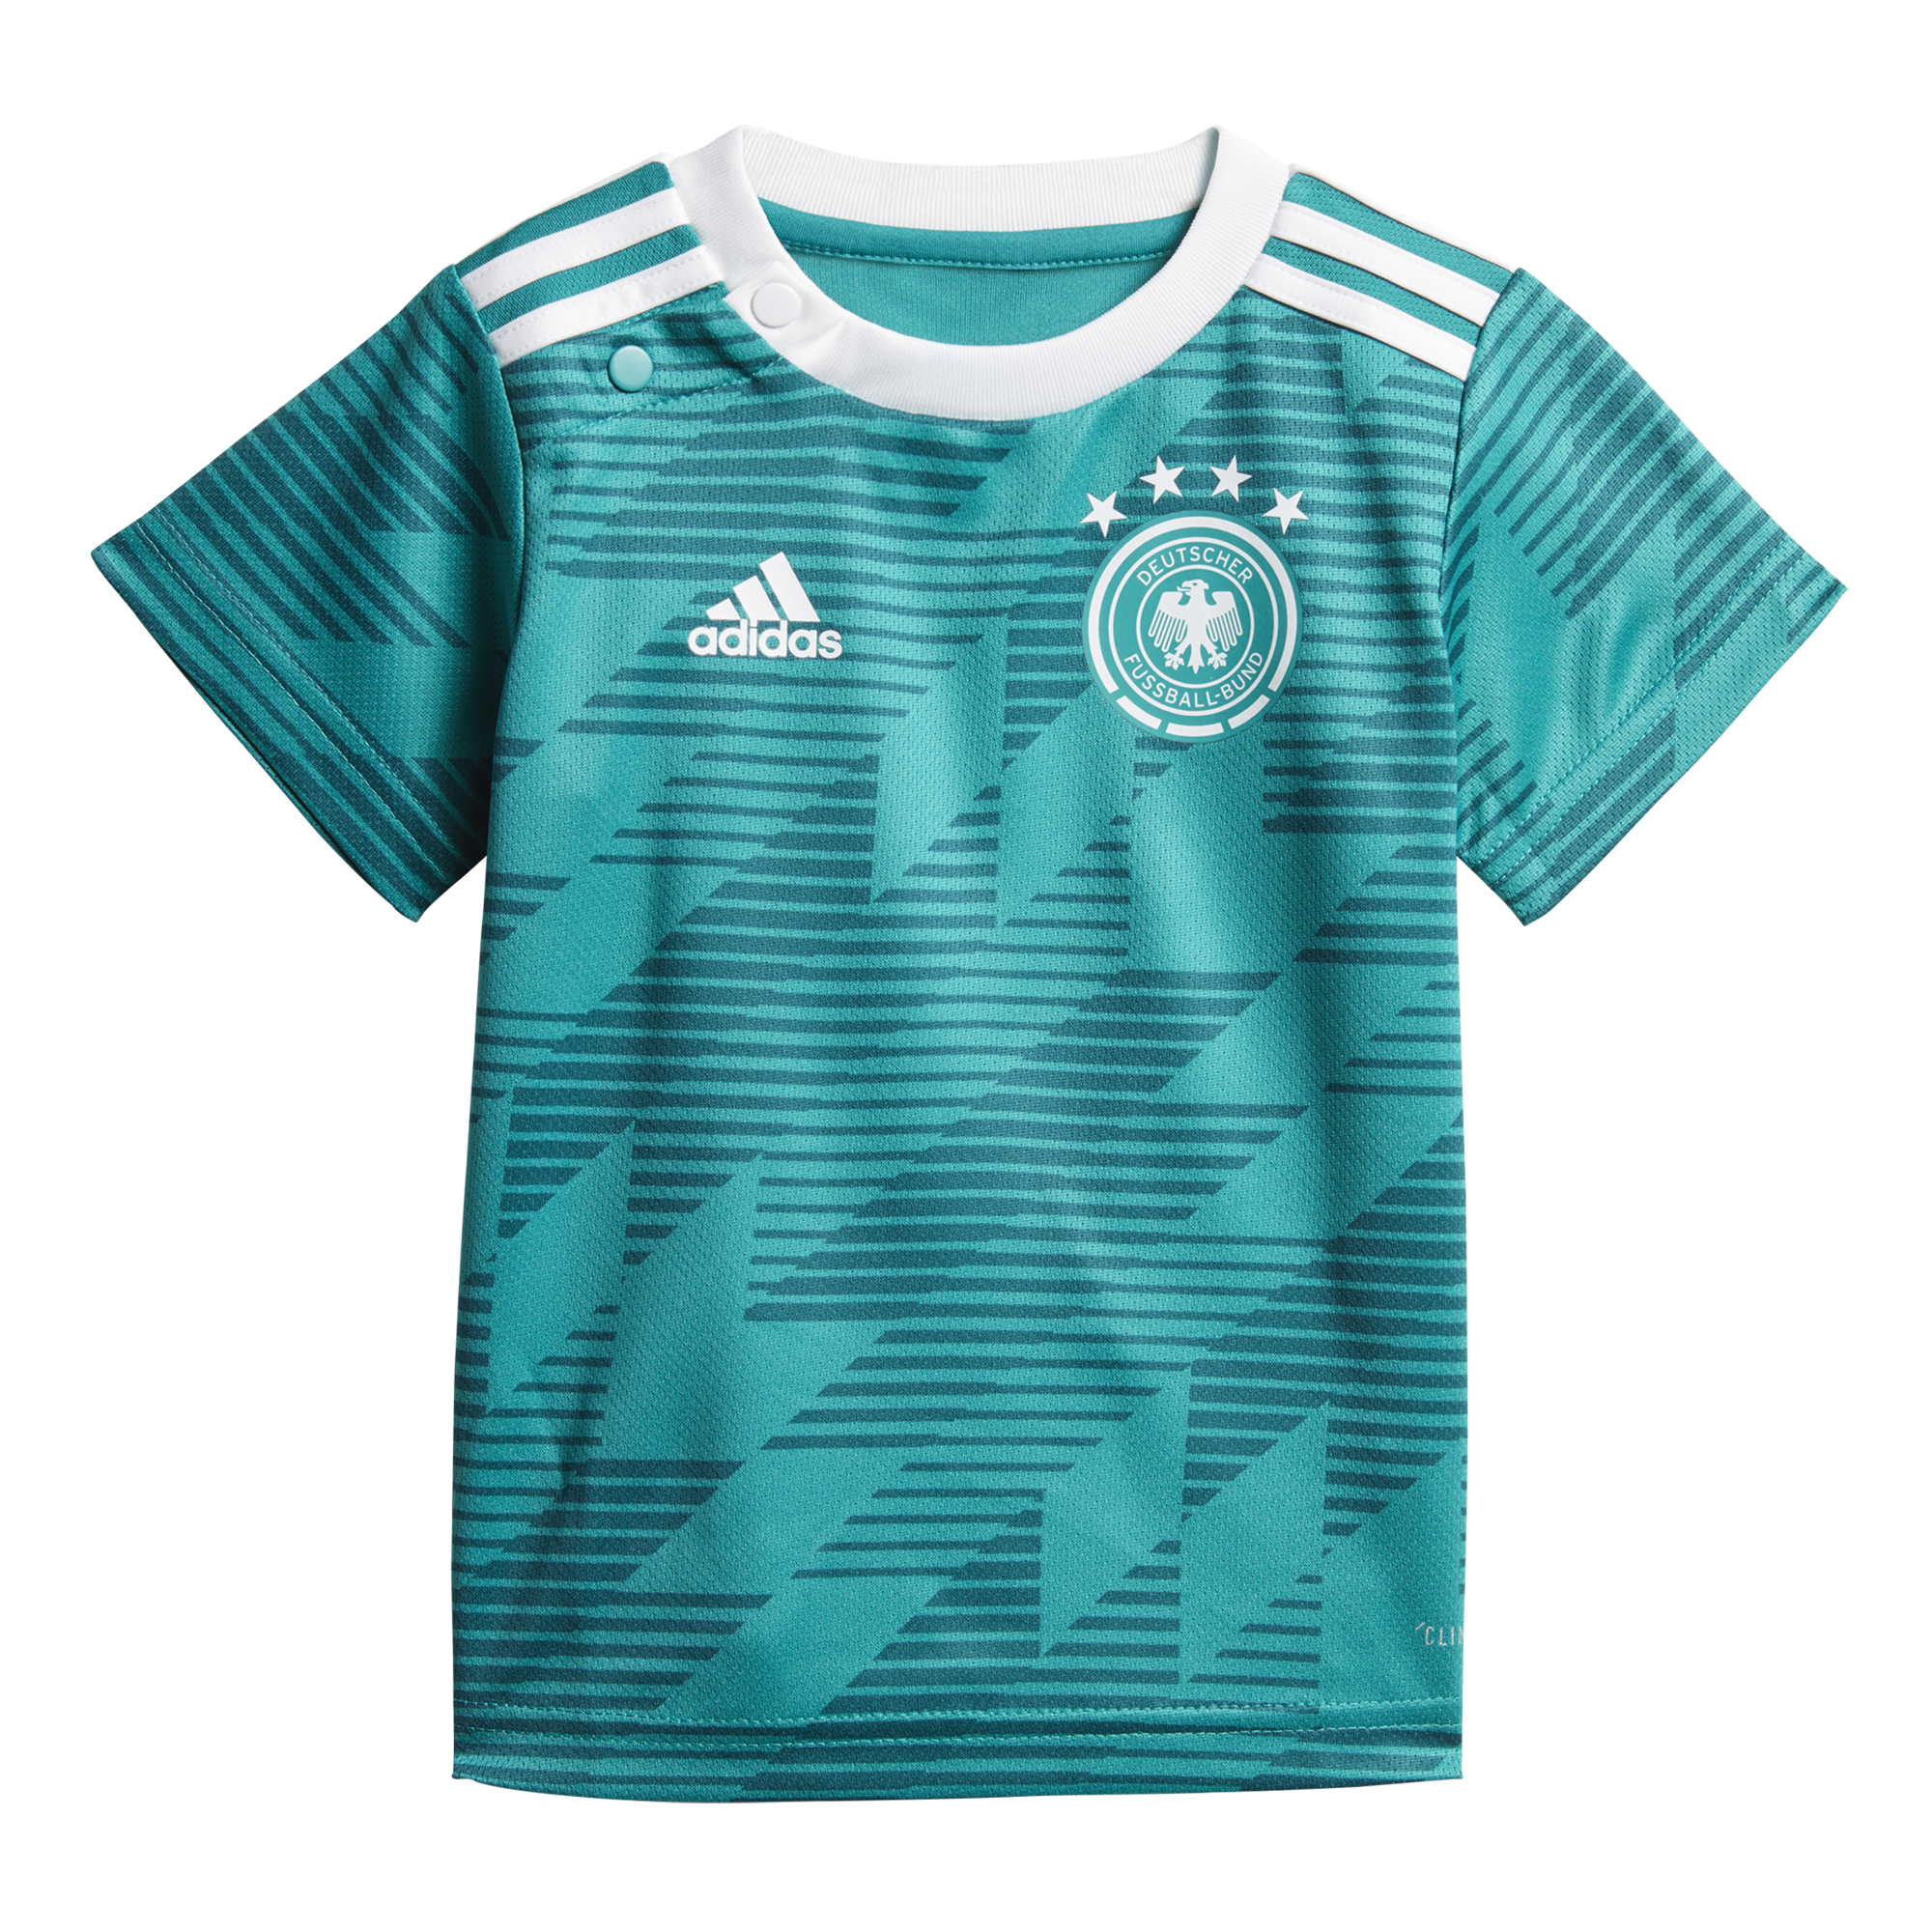 adidas deutschland trikot dfb baby kit 2018 ausw rts. Black Bedroom Furniture Sets. Home Design Ideas